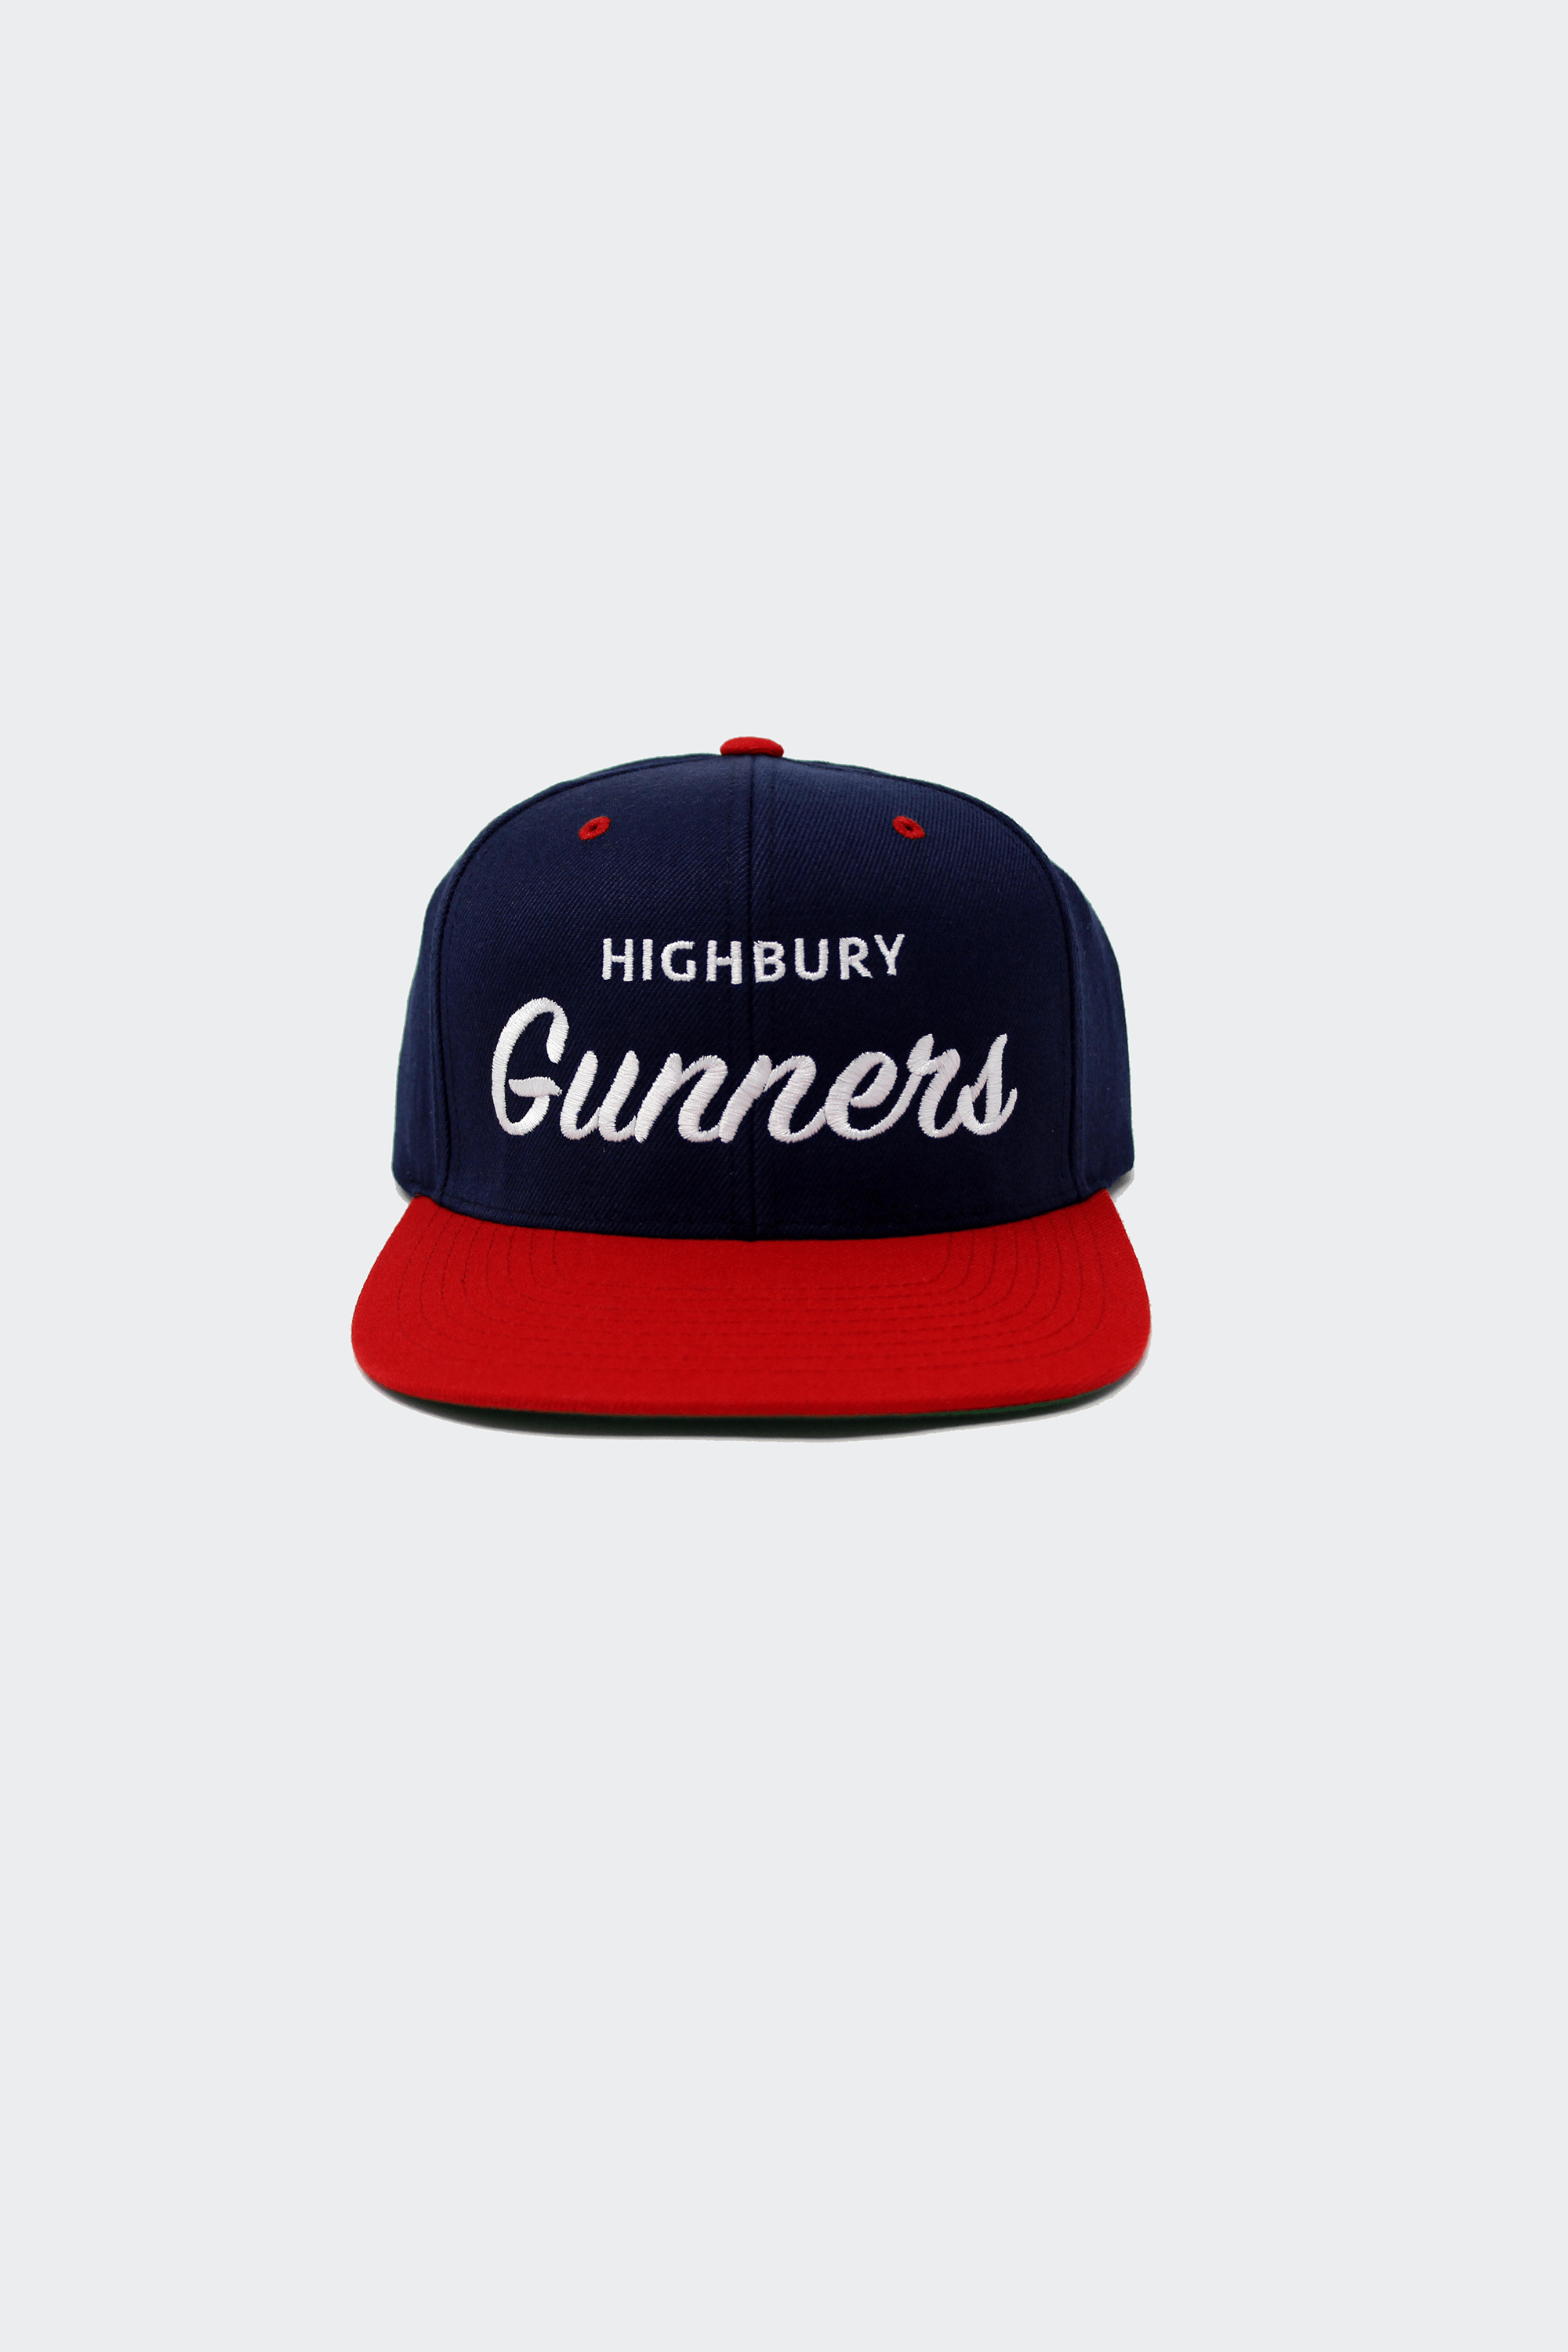 87455838cf3 This London Arsenal snapback hat features the home of Arsenal Stadium